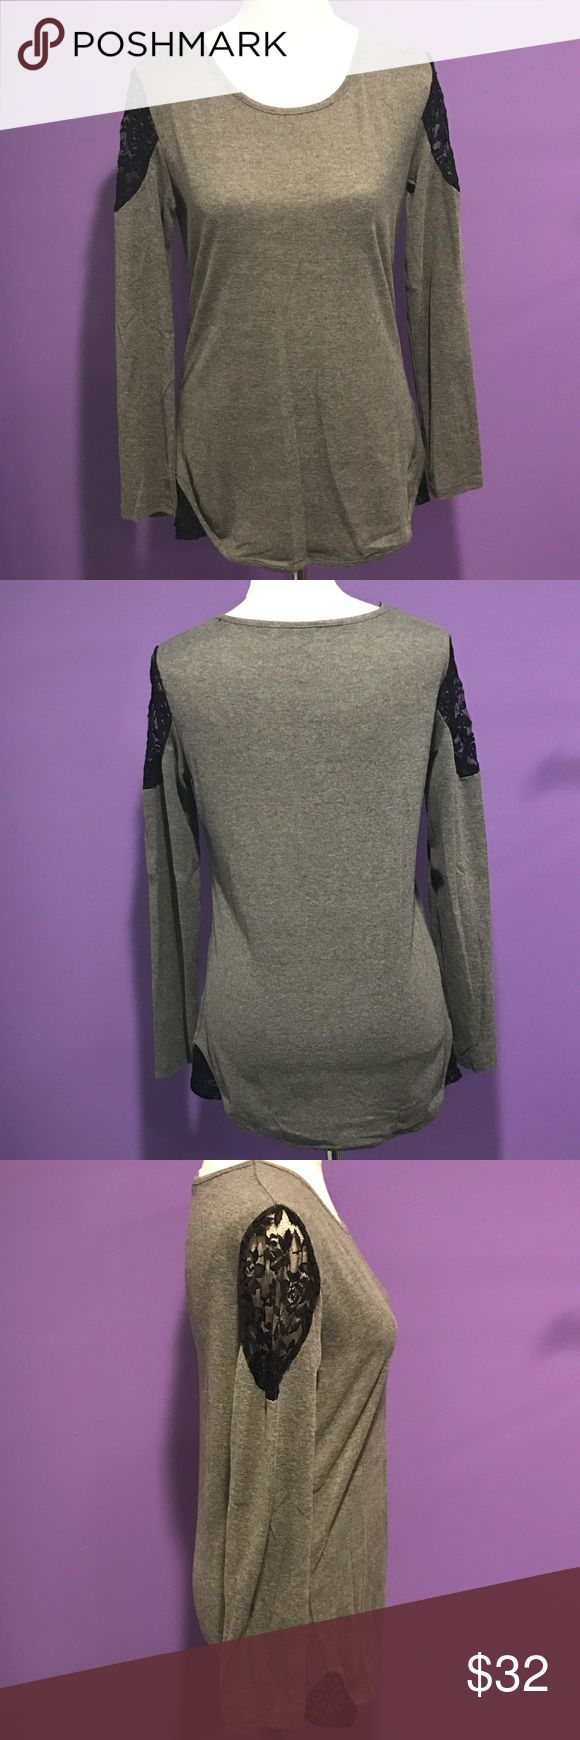 Grey Long Sleeve Top with Black Lace Grey Long Sleeve Top with Black Lace on Shoulder and Hip. This is NWOT Retail. Measurements Available Upon Request Tops Tees - Long Sleeve